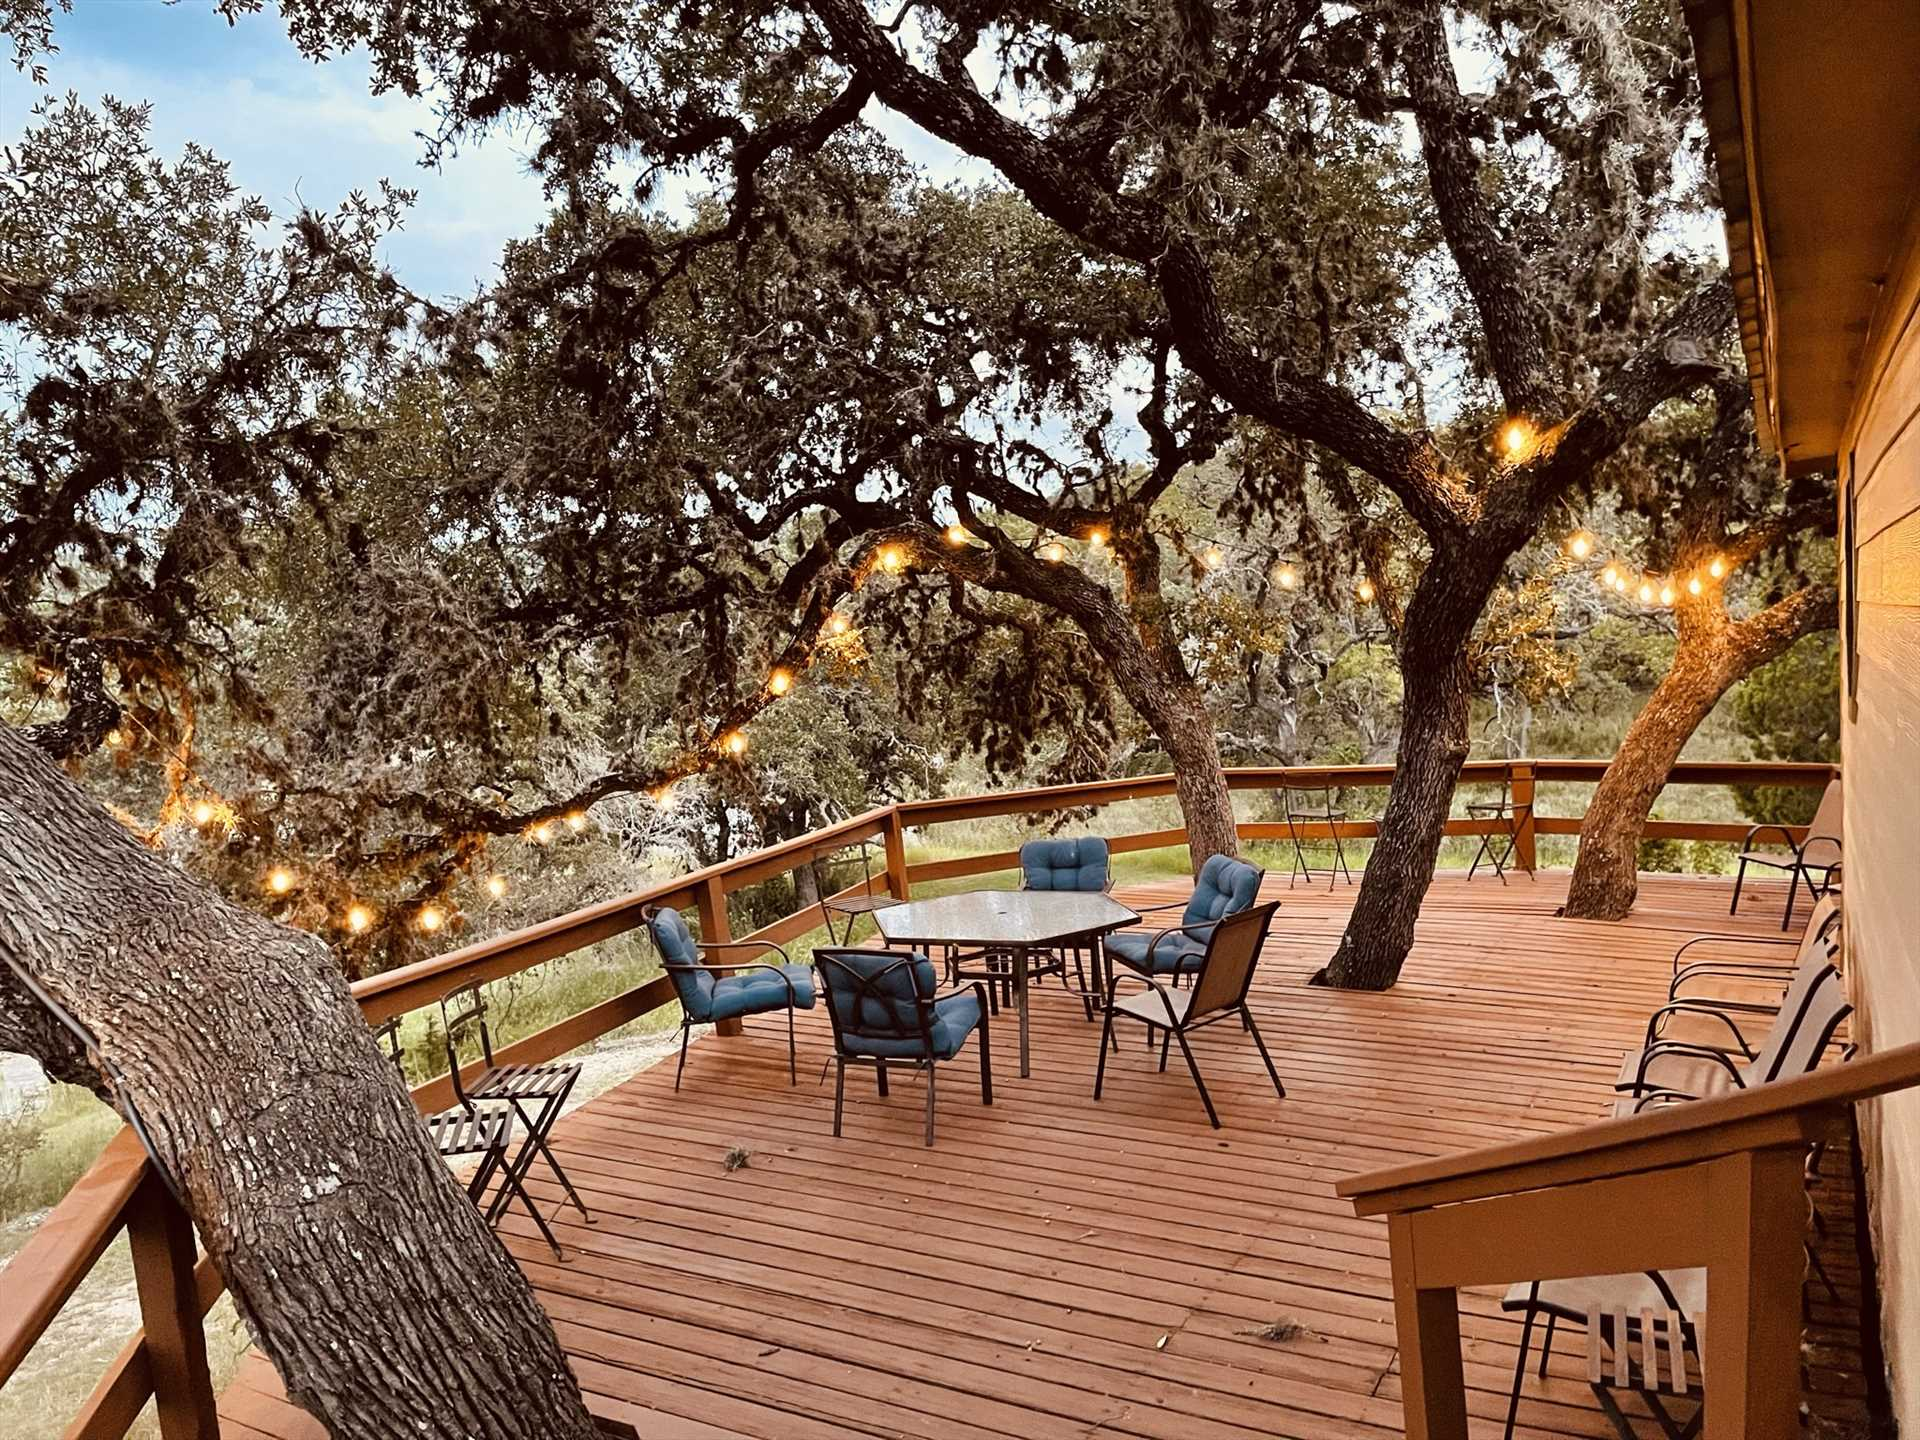 Trees sprout right up through Rio Vista's roomy deck to provide cooling shade as you enjoy the view!